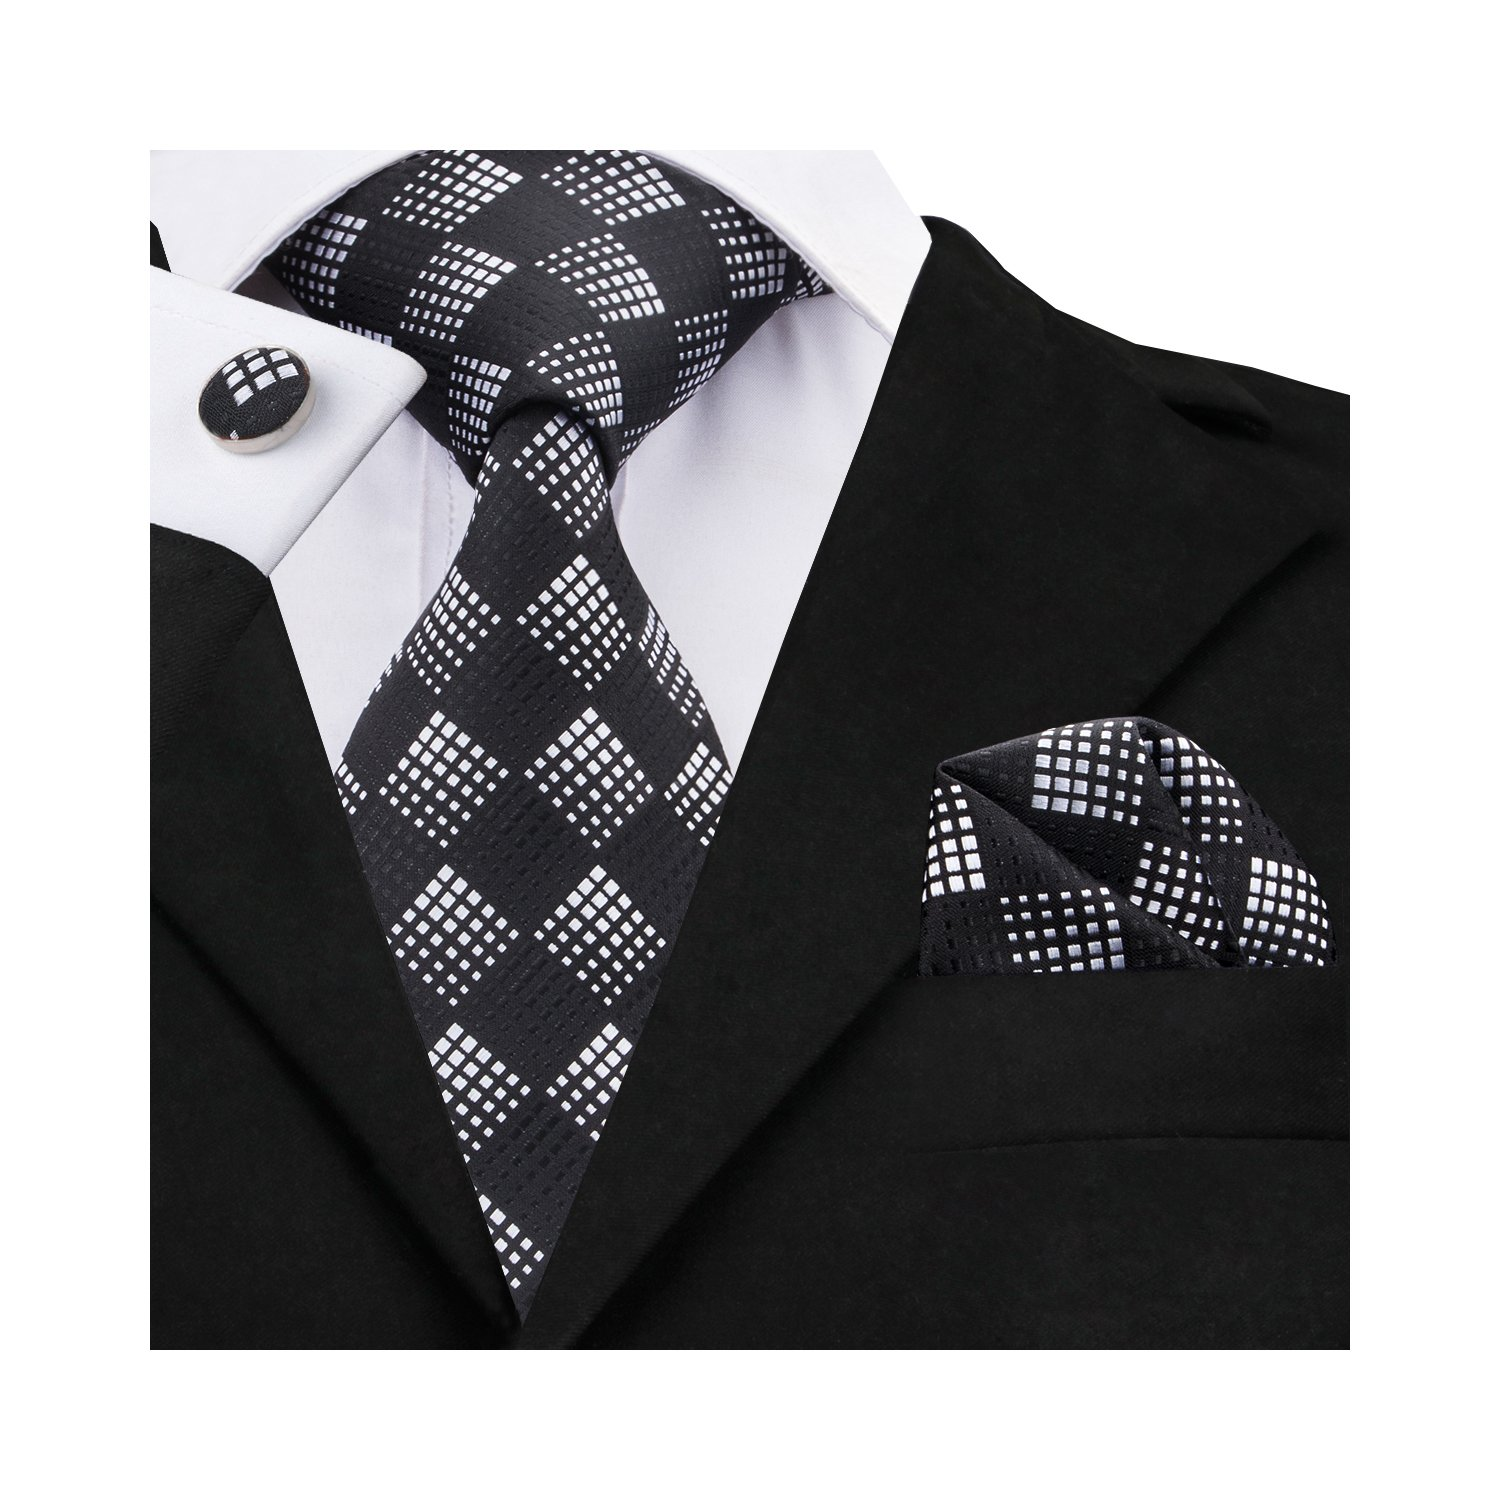 1250d205e6aa ○Size:Tie Width: 3.35 inches(8.5cm); Tie Length: 59 inches(150cm);  Handkerchief Size: 9 inches x 9 inche(23cm x 23cm); Cufflink Diameter:0.55  inches(1.4cm)